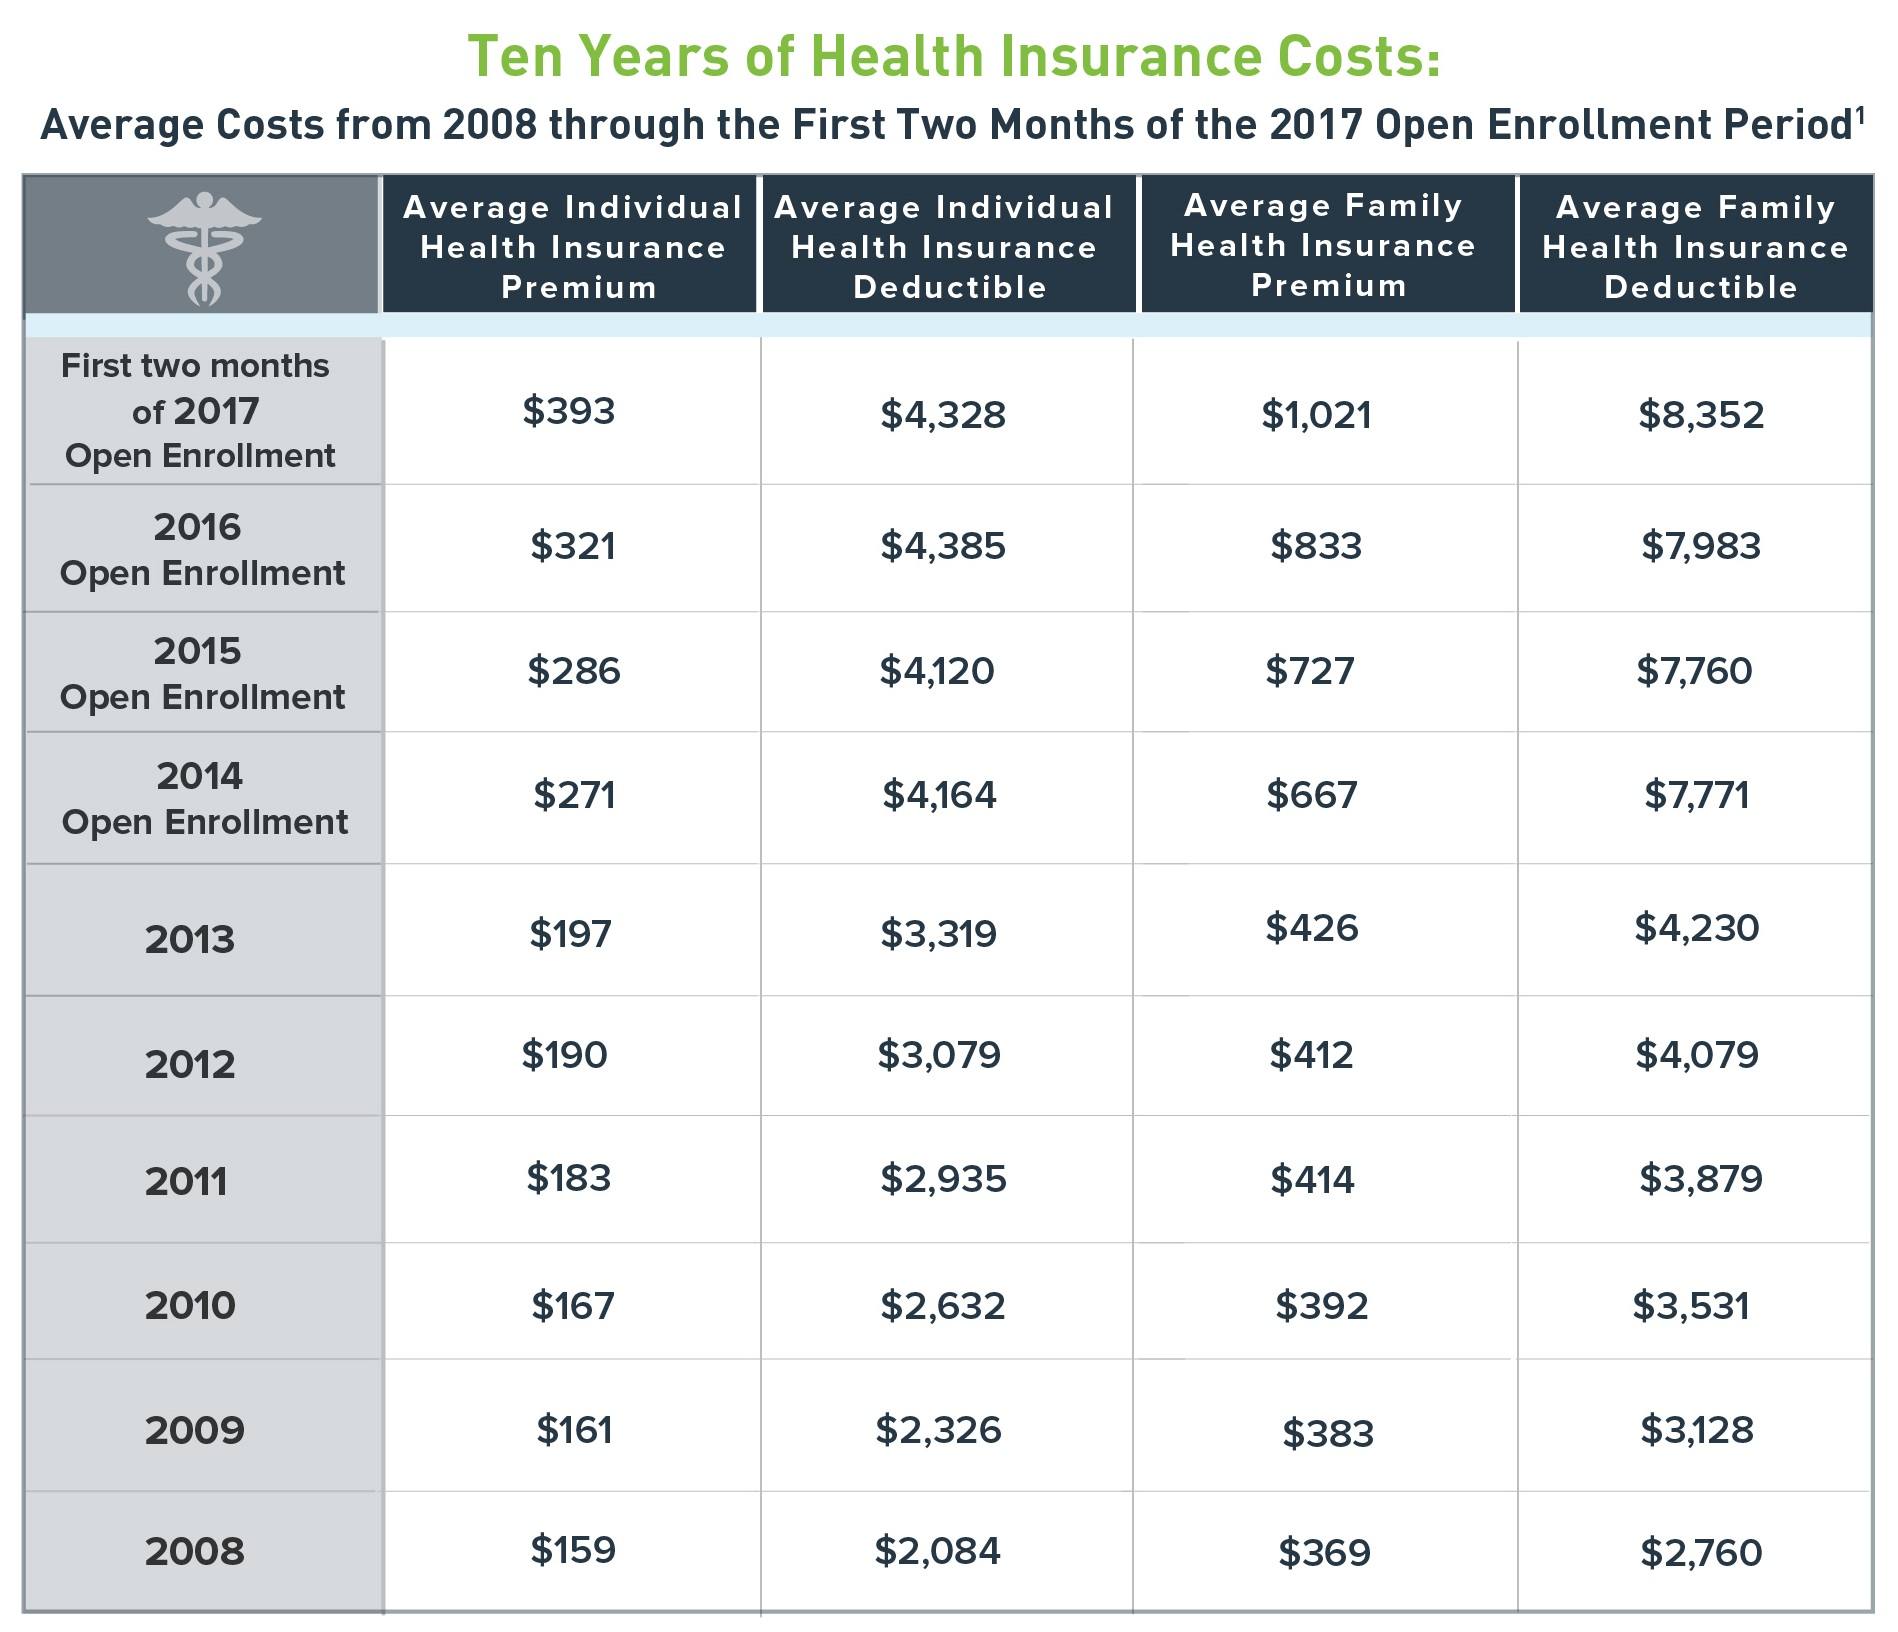 Short Term Health Insurance Quotes: How Much Does Obamacare Cost In 2017?